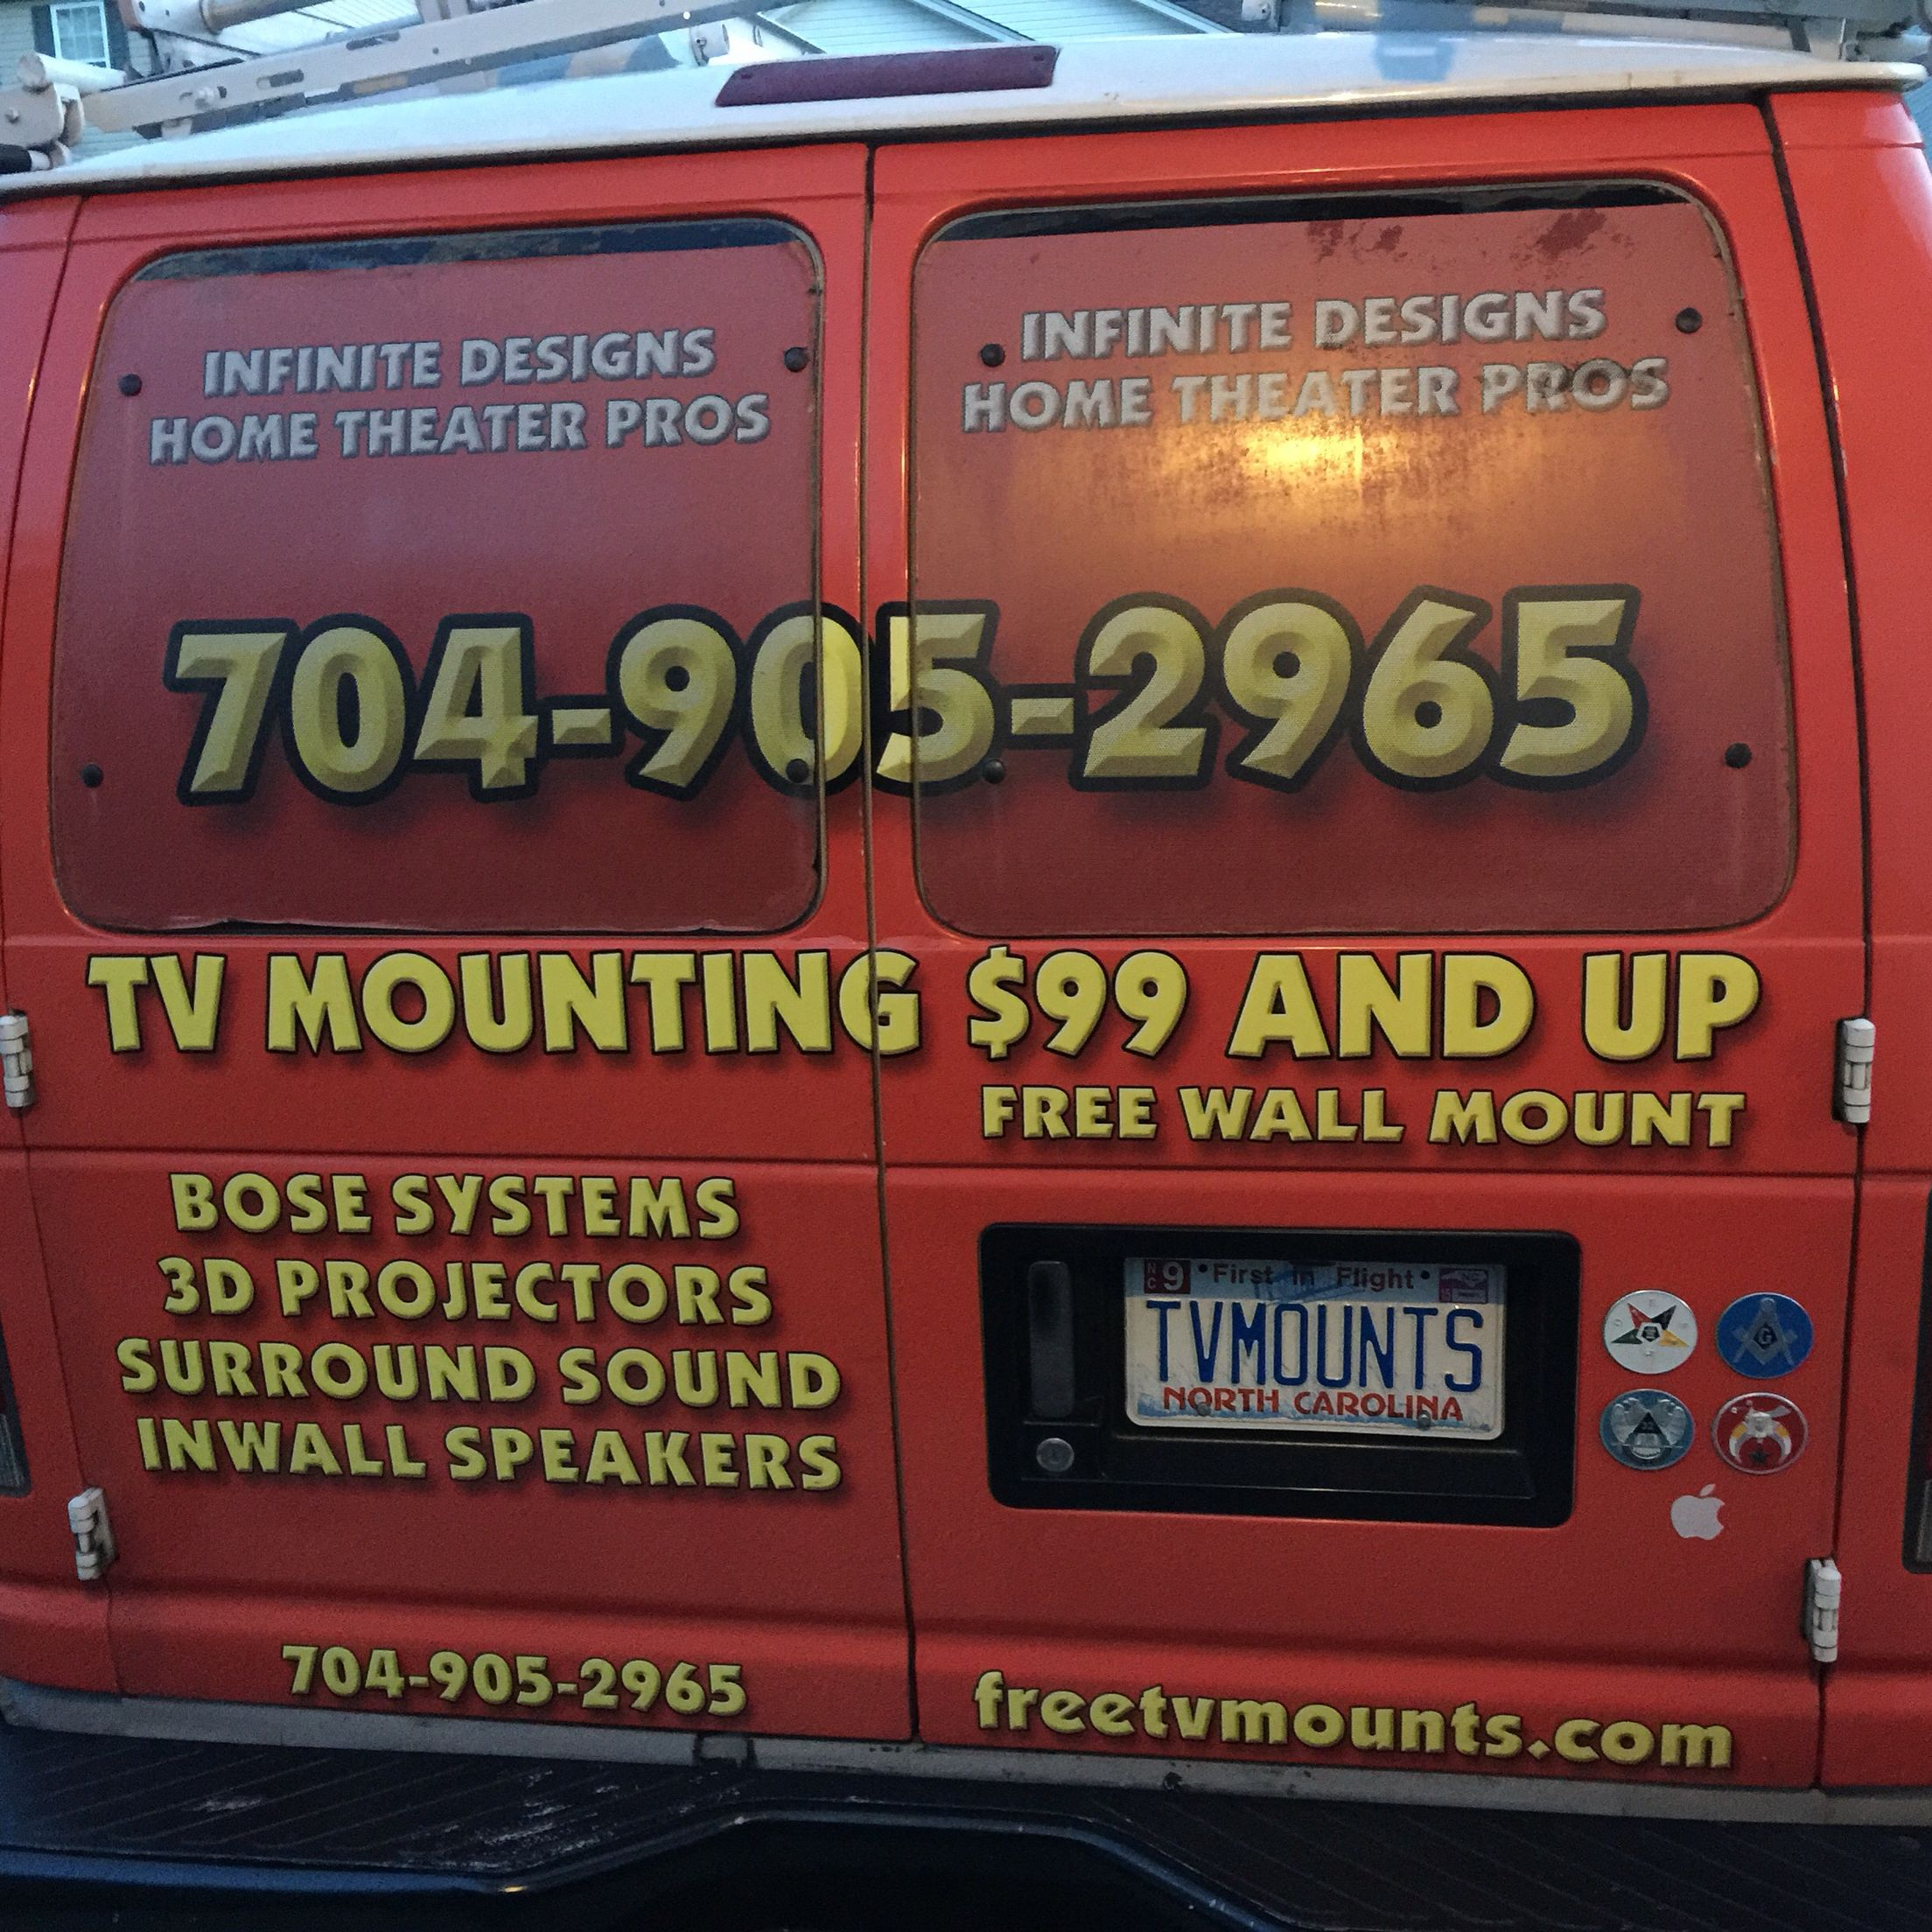 Pin on TV Mounting Service Flyers, Ads, Graphics https